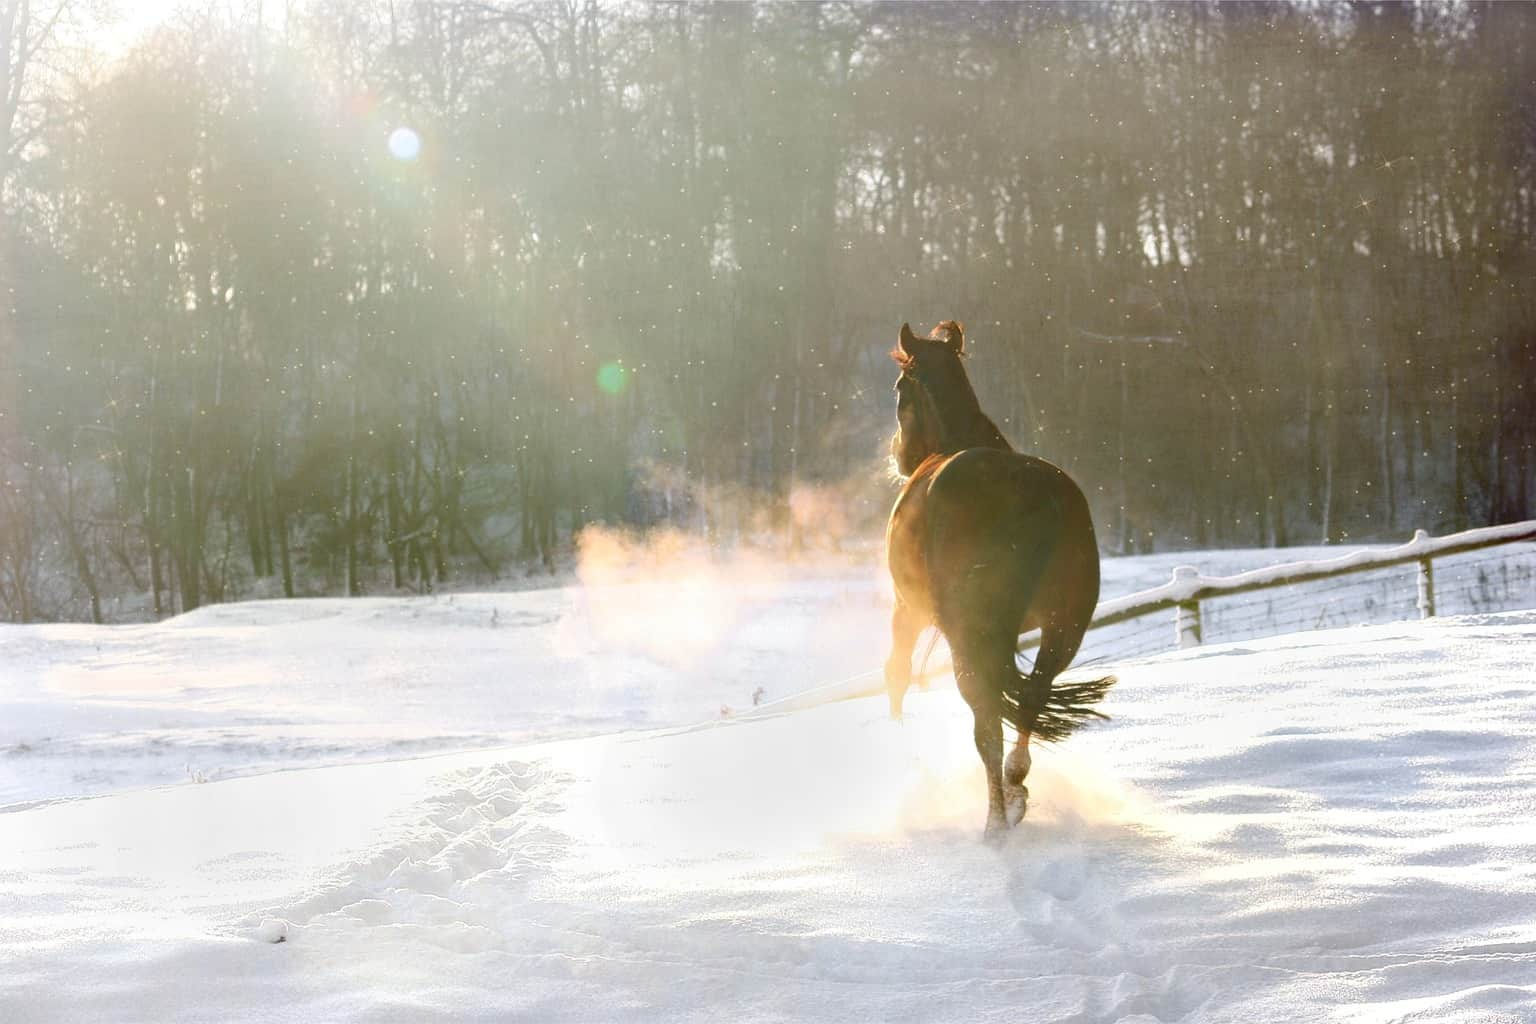 How Can I Tell if My Horse is Cold?